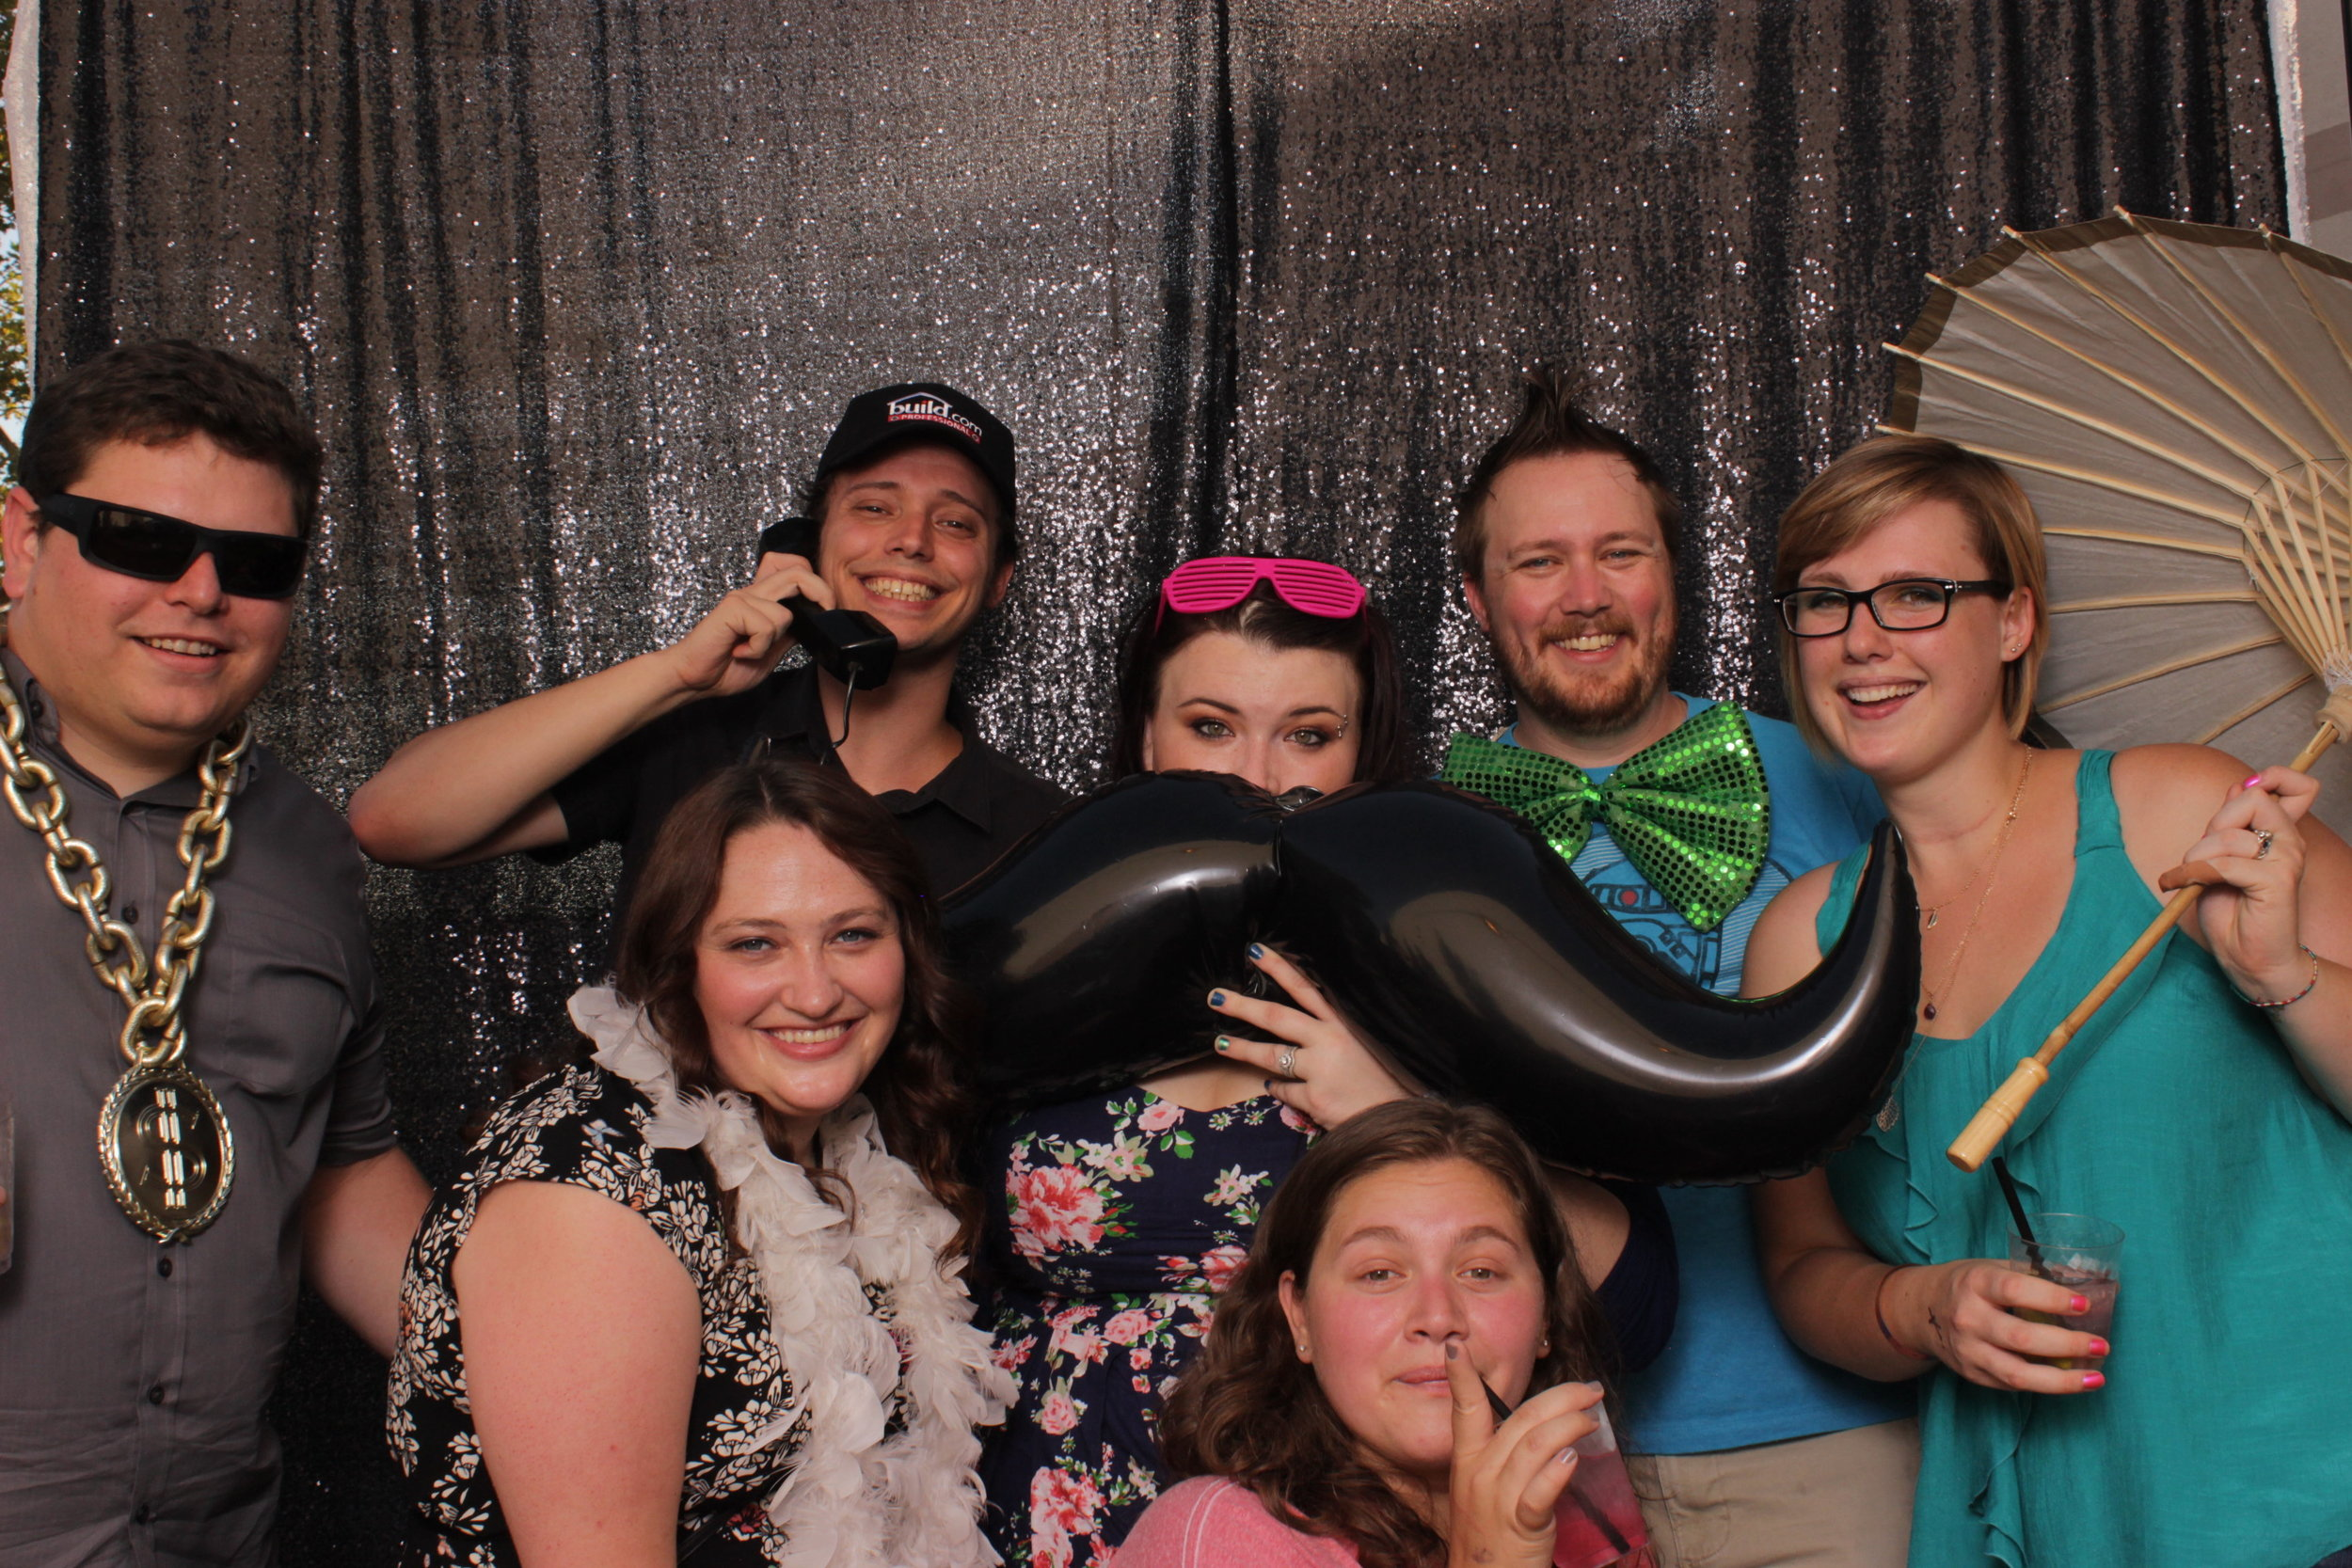 build-corporate-party-photo-booth-rental-fun-props